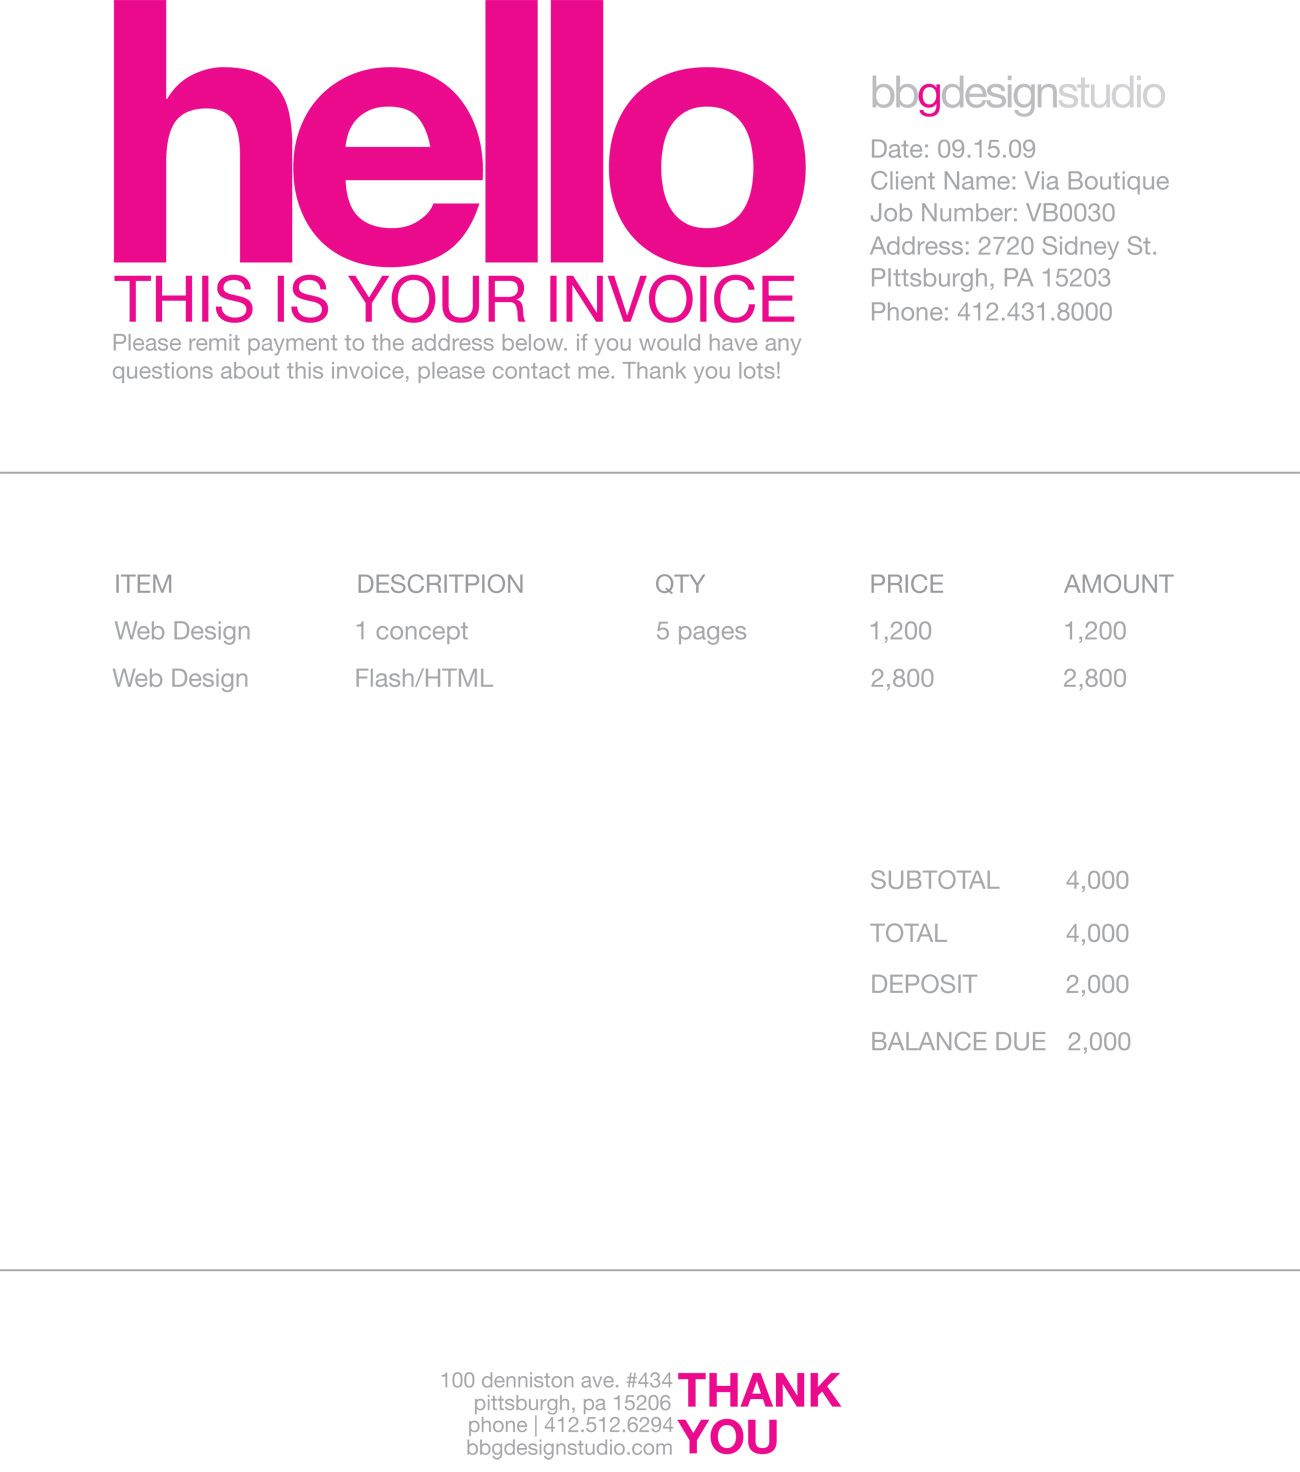 Ultrablogus  Pretty  Images About Invoice Design On Pinterest With Lovely Receipt Template For Rent Besides Home Rent Receipt Furthermore Lic Payment Receipts Online With Cute Microsoft Word Receipt Template Free Also Hra Receipt Format In Addition Receipt Format In Doc And Sample Of Receipts Template As Well As Receipt For Private Car Sale Additionally Confirmation Of Receipt Of Payment From Pinterestcom With Ultrablogus  Lovely  Images About Invoice Design On Pinterest With Cute Receipt Template For Rent Besides Home Rent Receipt Furthermore Lic Payment Receipts Online And Pretty Microsoft Word Receipt Template Free Also Hra Receipt Format In Addition Receipt Format In Doc From Pinterestcom